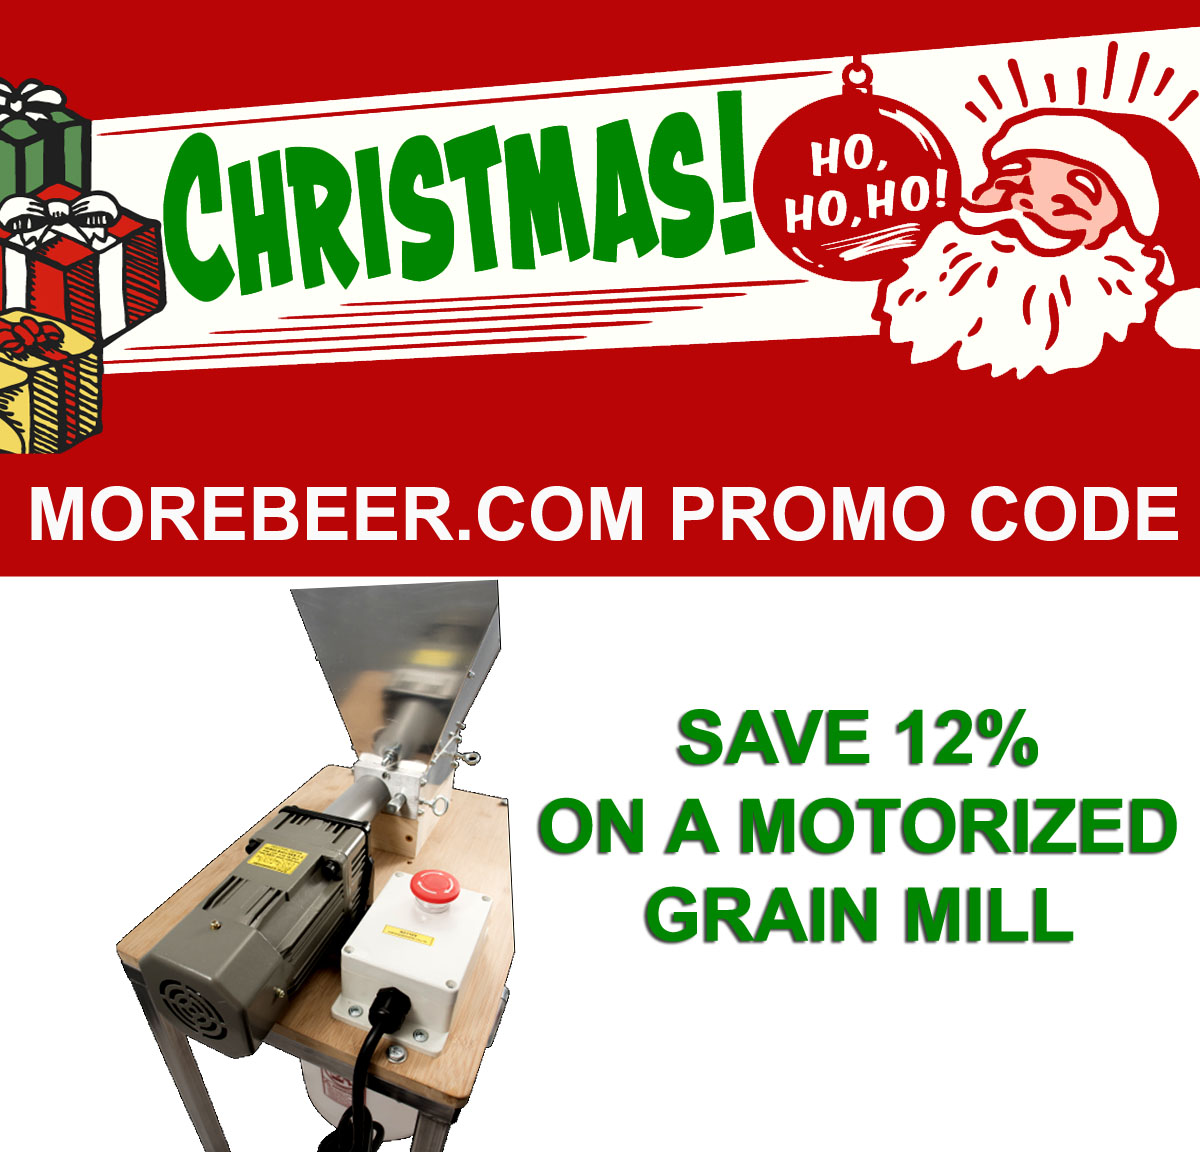 Save 12% On A Motorized Malt Mill at More Beer! Coupon Code